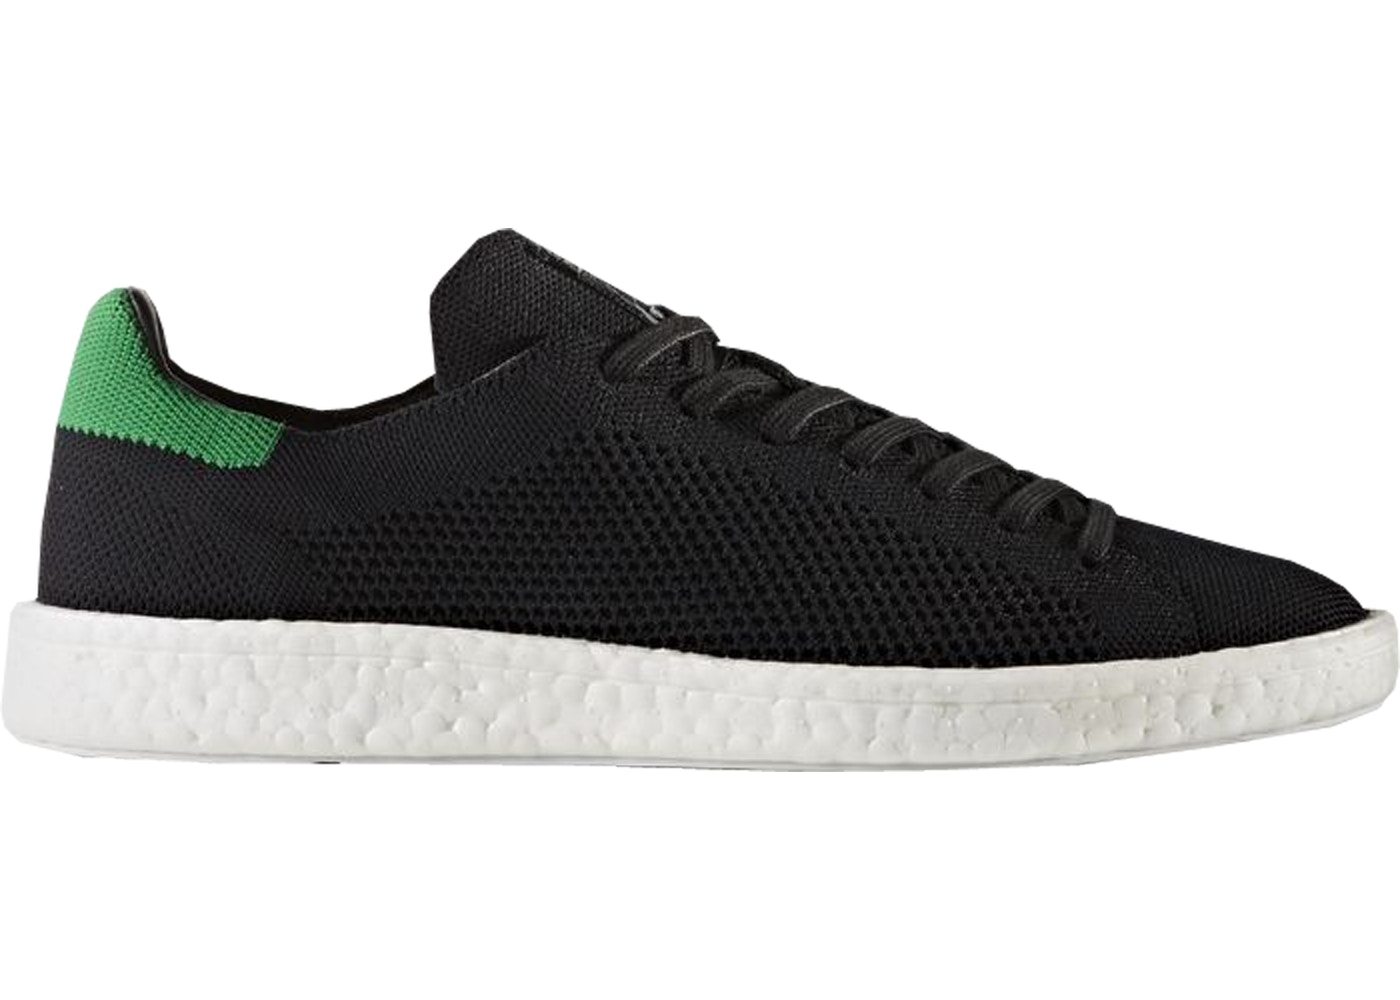 separation shoes 9264c c05c6 adidas Stan Smith Boost Primeknit Black Green